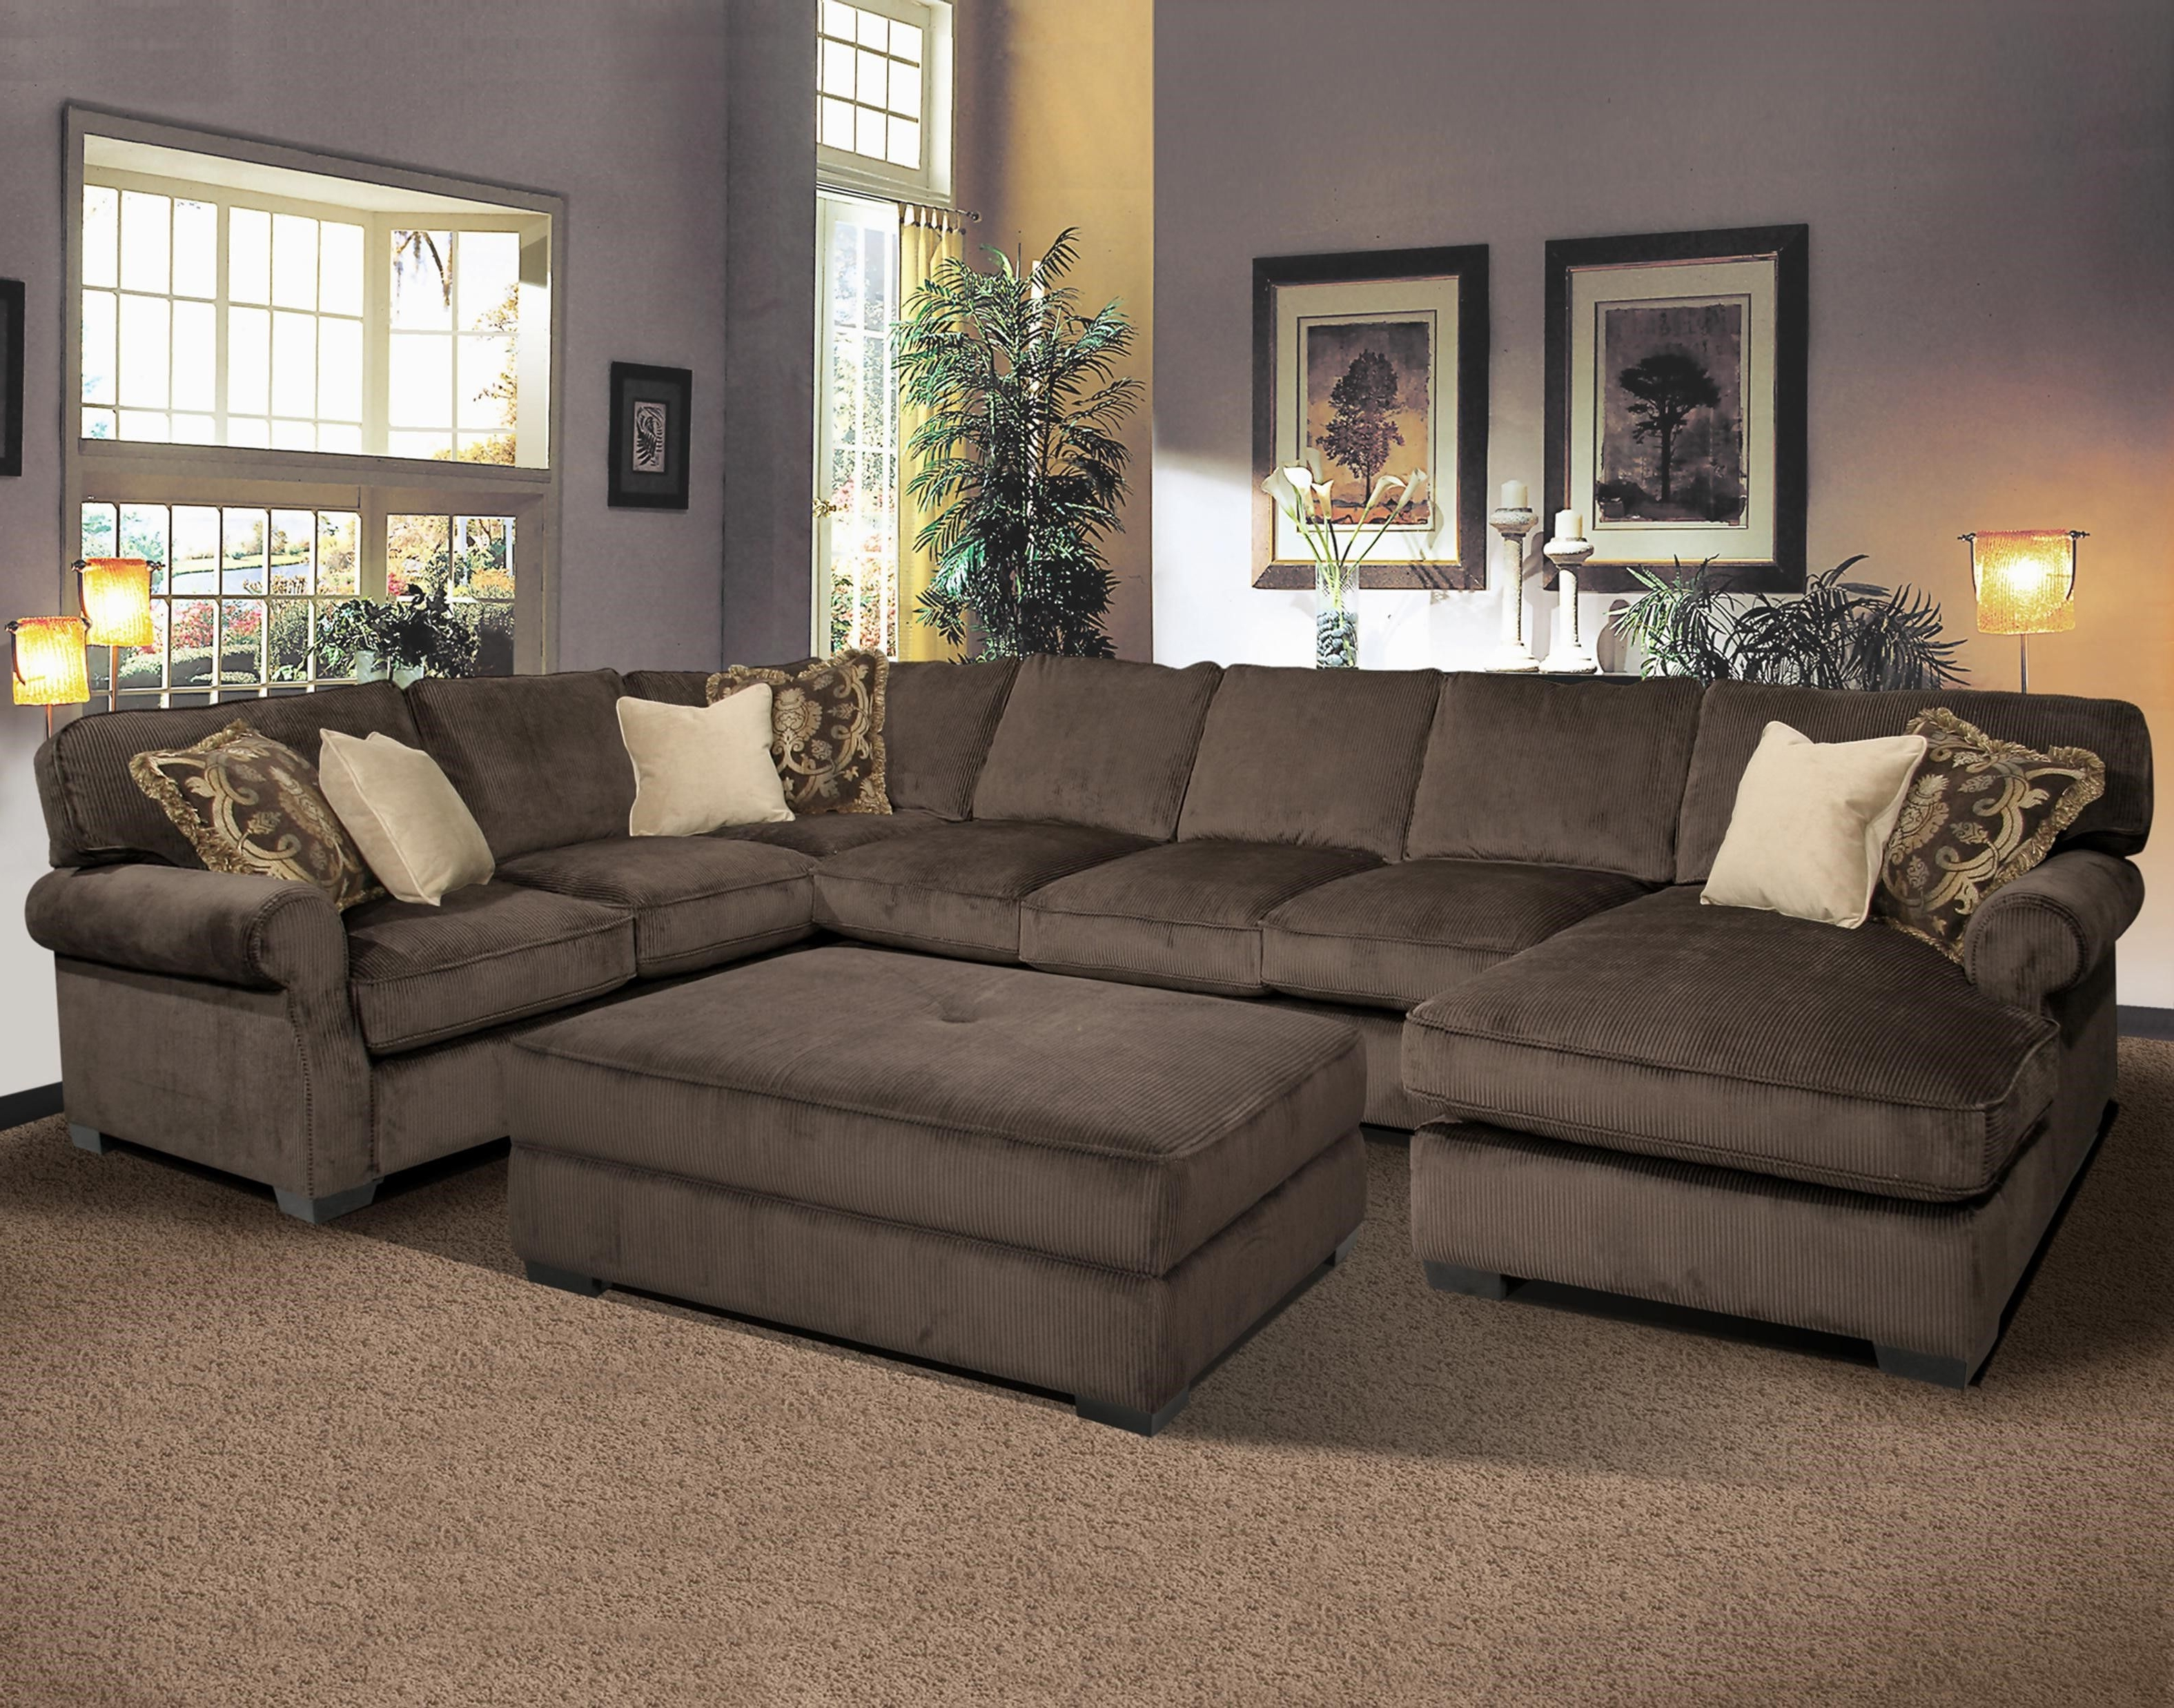 Photos Of Goose Down Sectional Sofas